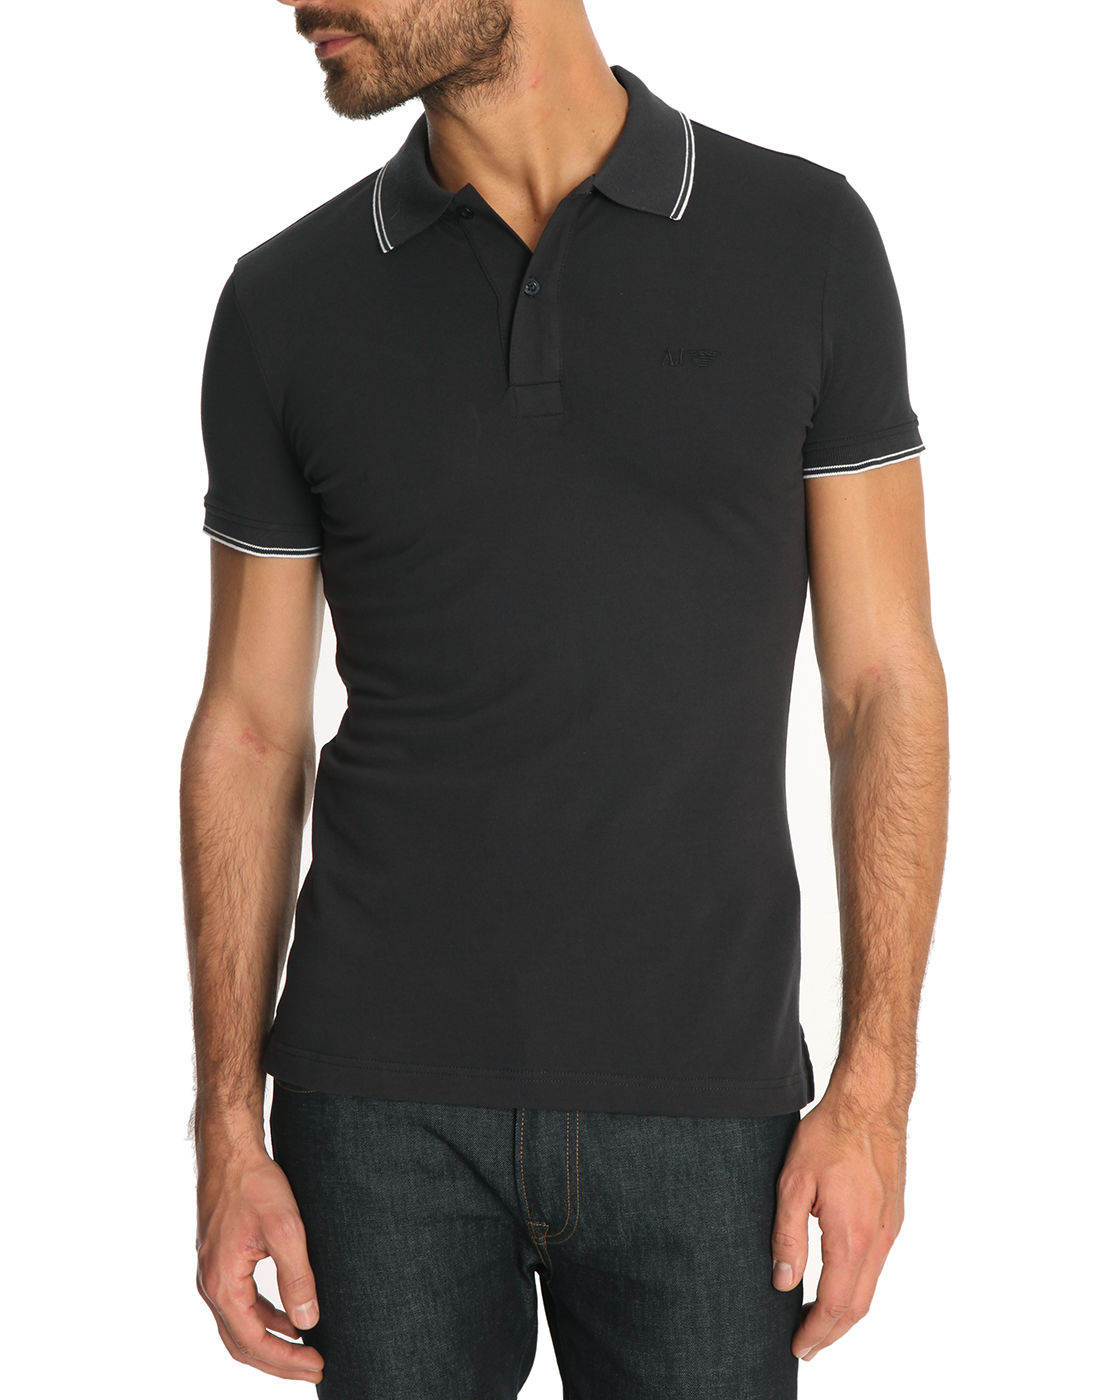 Armani Jeans Navy Slim Fit Polo Shirt With Line Trim In